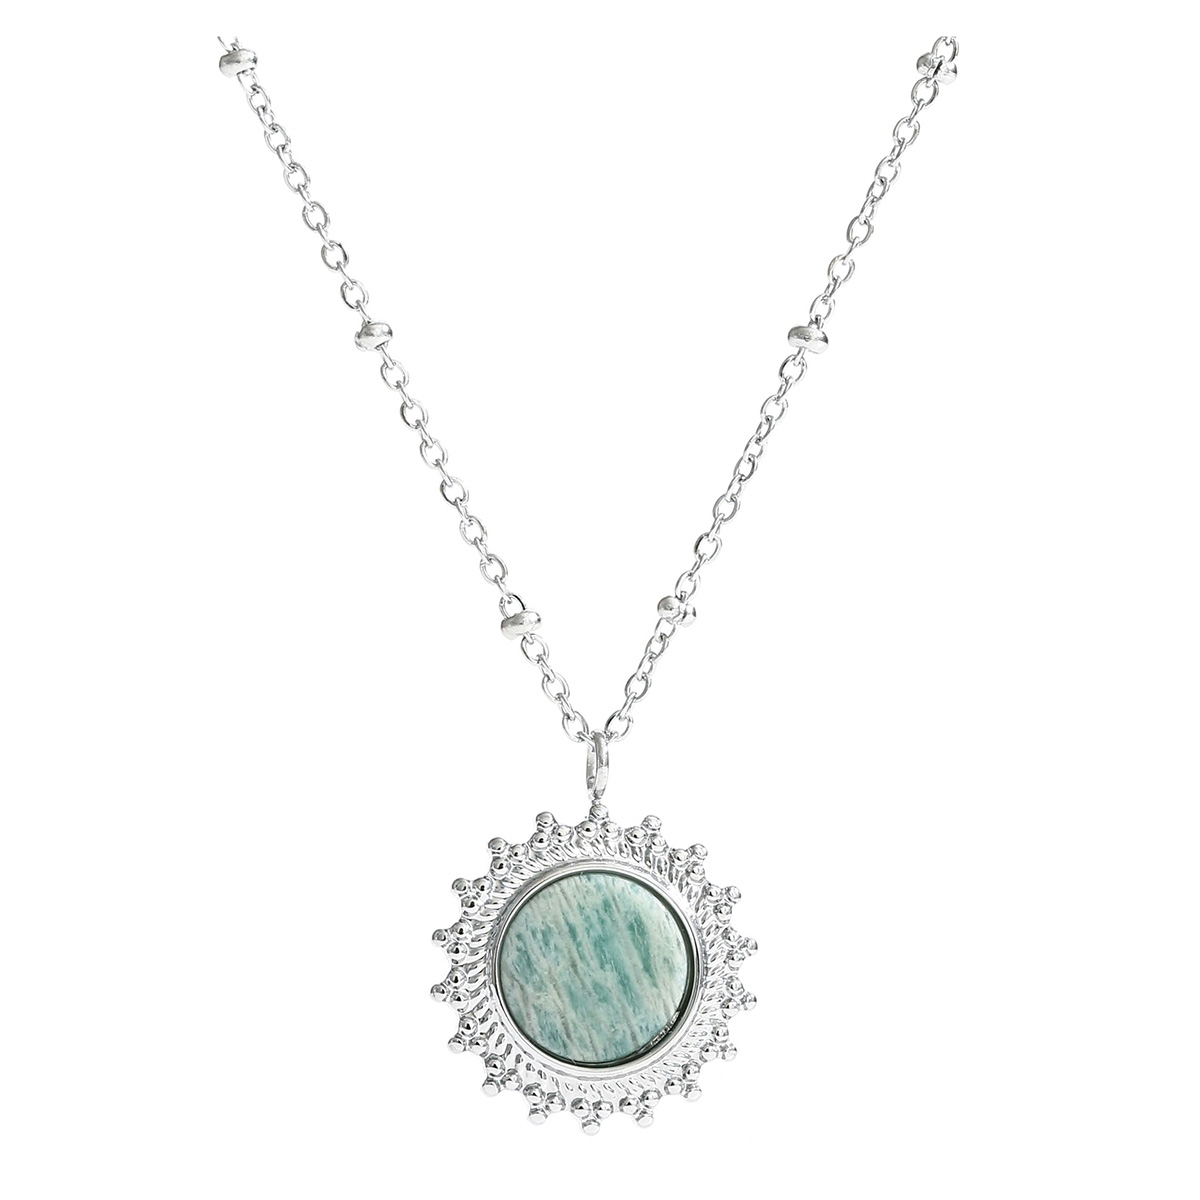 maud necklace  je11288 touch sieraad silver/mint